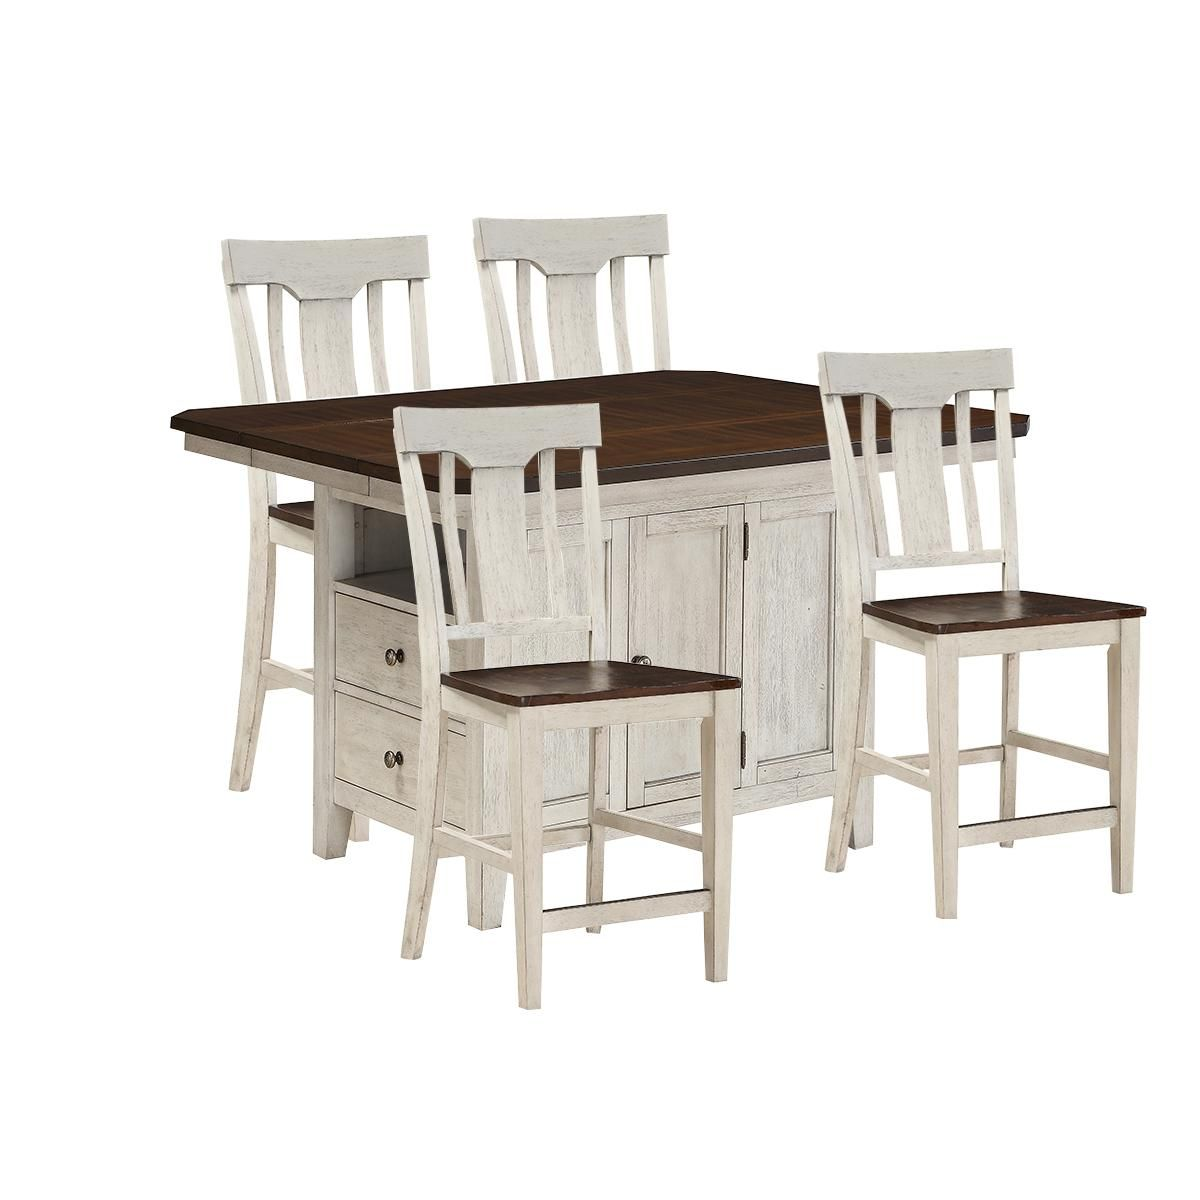 Newport 5 Piece Kitchen Island Set With Chairs In Dry Coffee Over White Furniture Rectangle Dining Set Furniture Shop